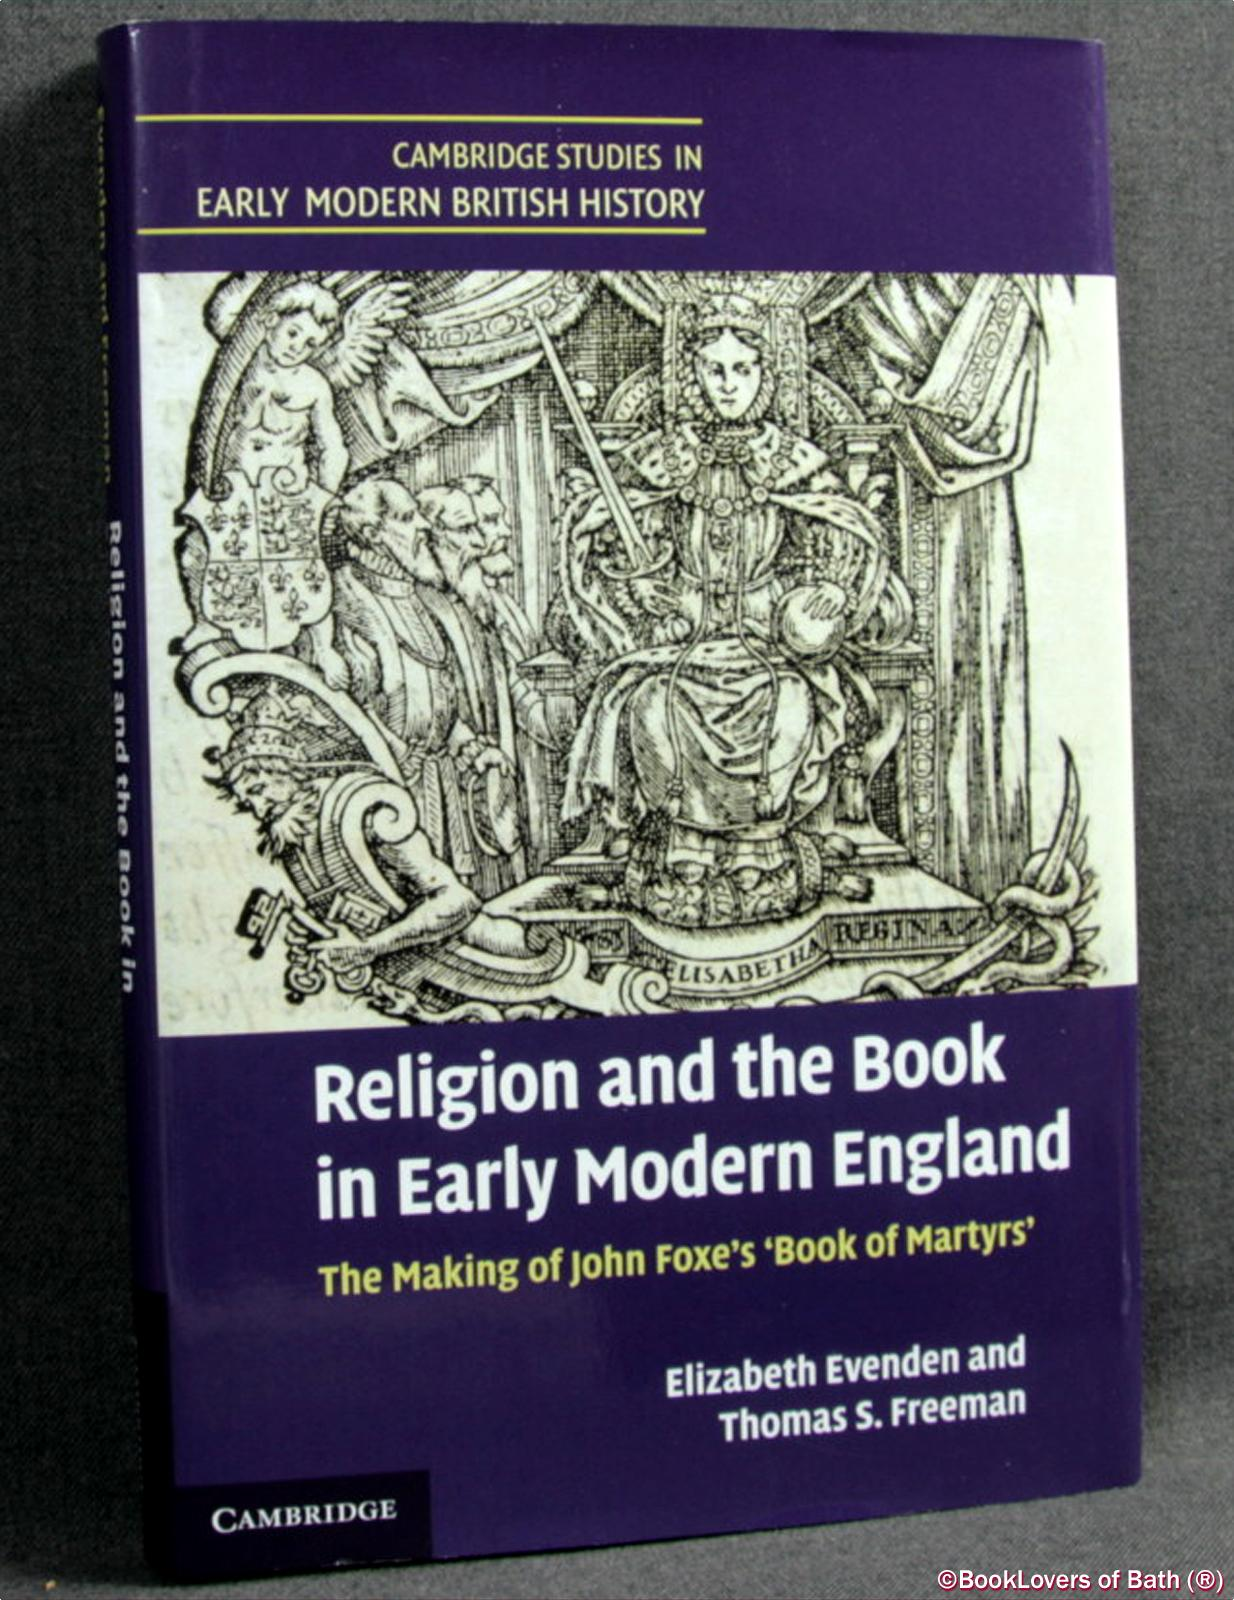 Religion and the Book in Early Modern England: The Making of John Foxe's 'Book of Martyrs' - Elizabeth Evenden & Thomas S. Freeman